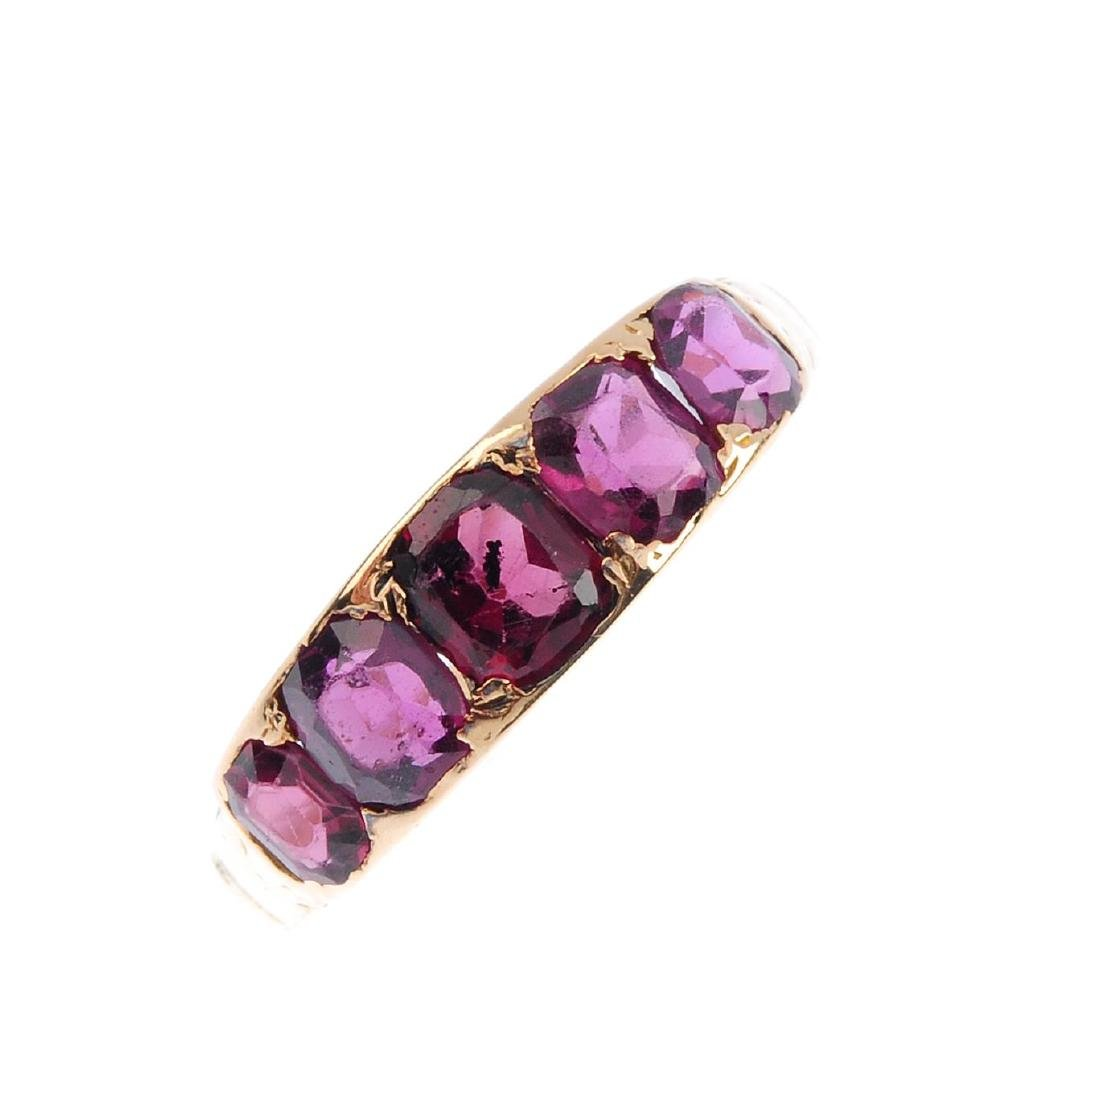 A garnet five-stone ring and two early 20th century